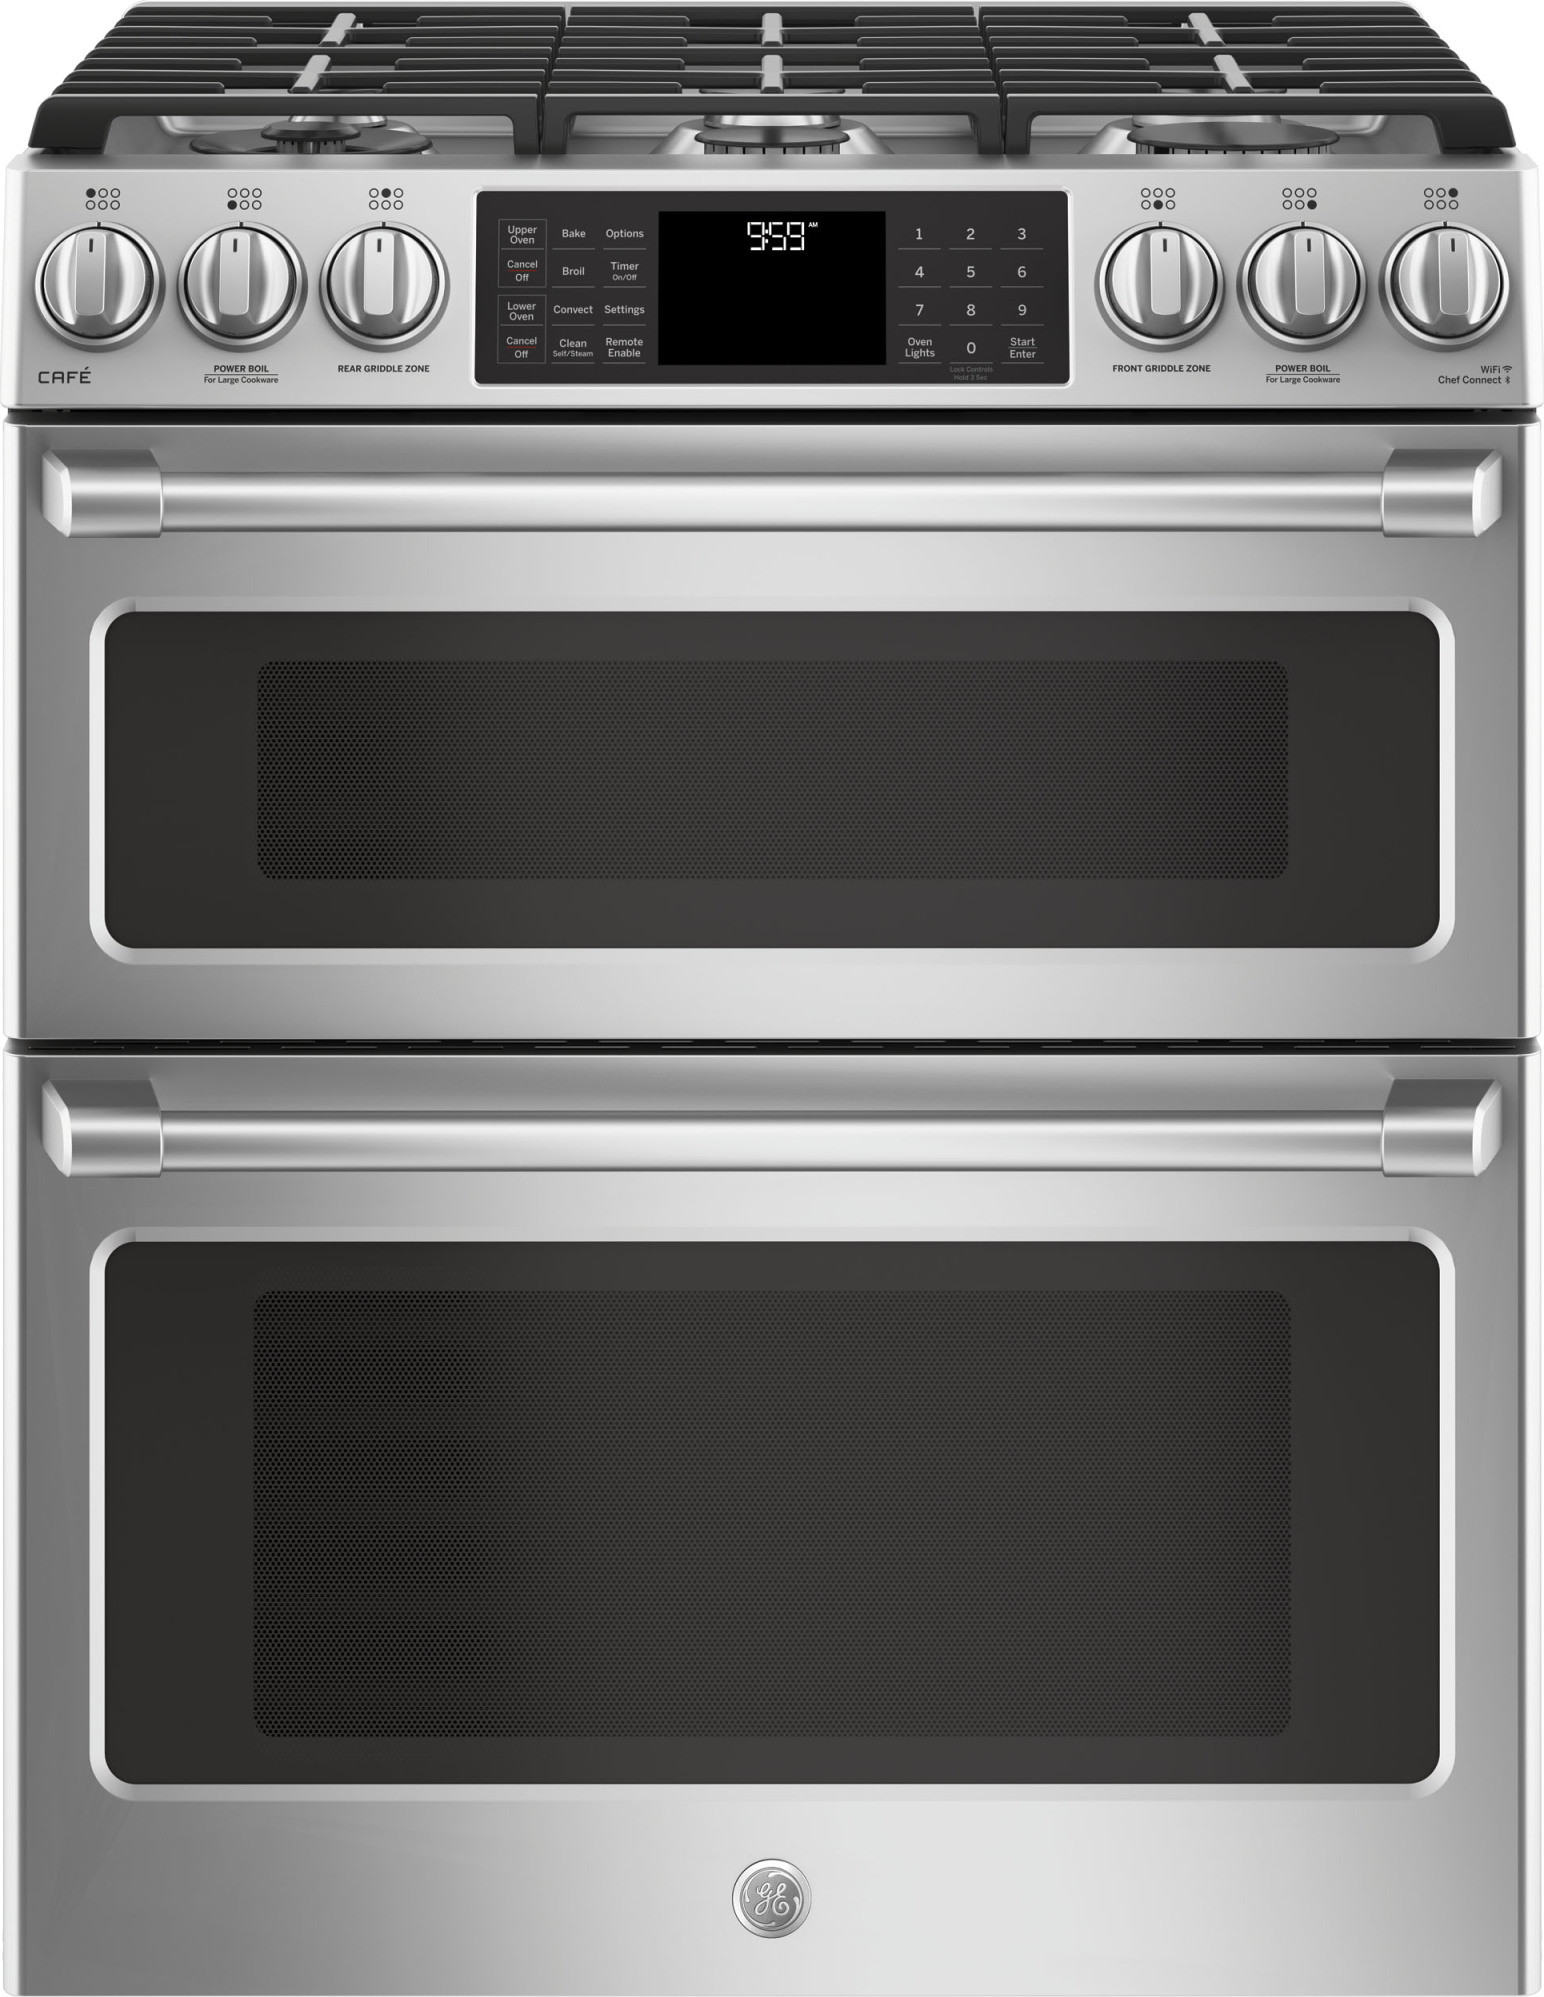 cgs995selss ge cafe 30 slide in front control gas double oven